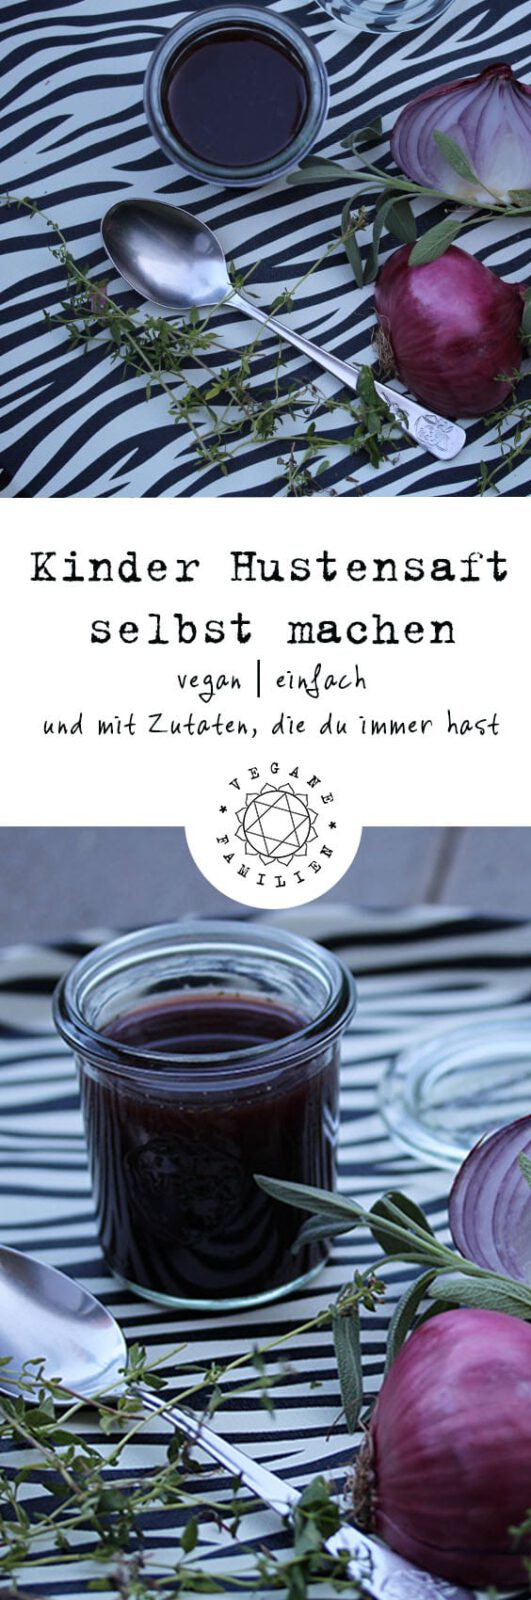 Kinder Hustensaft vegan